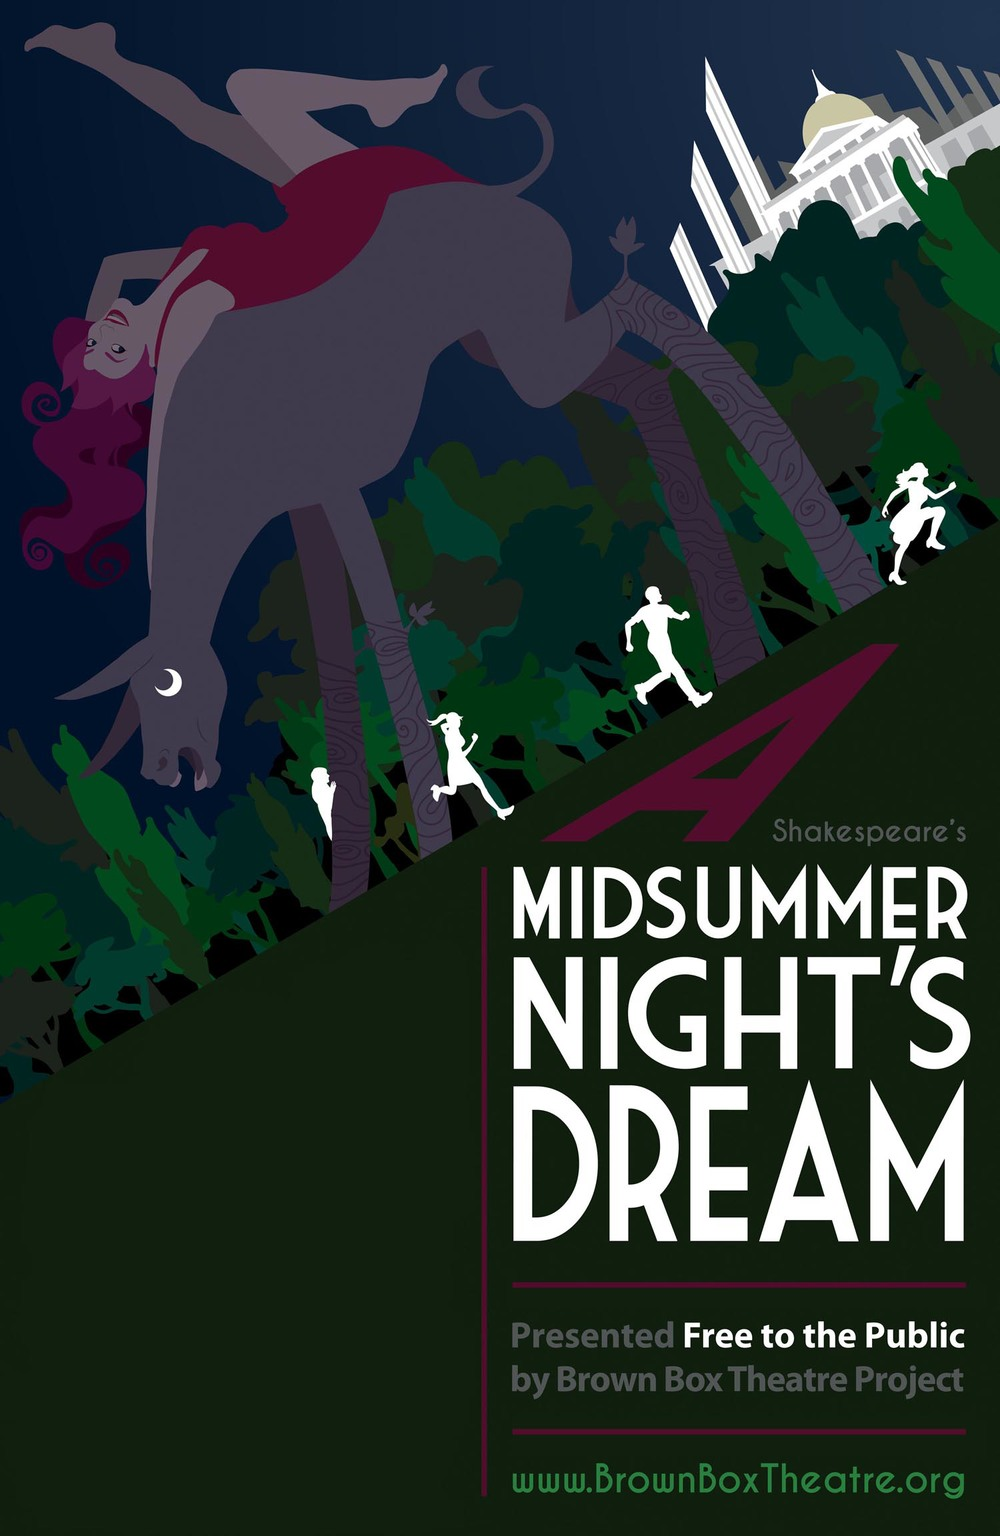 MidsummerPoster.jpg